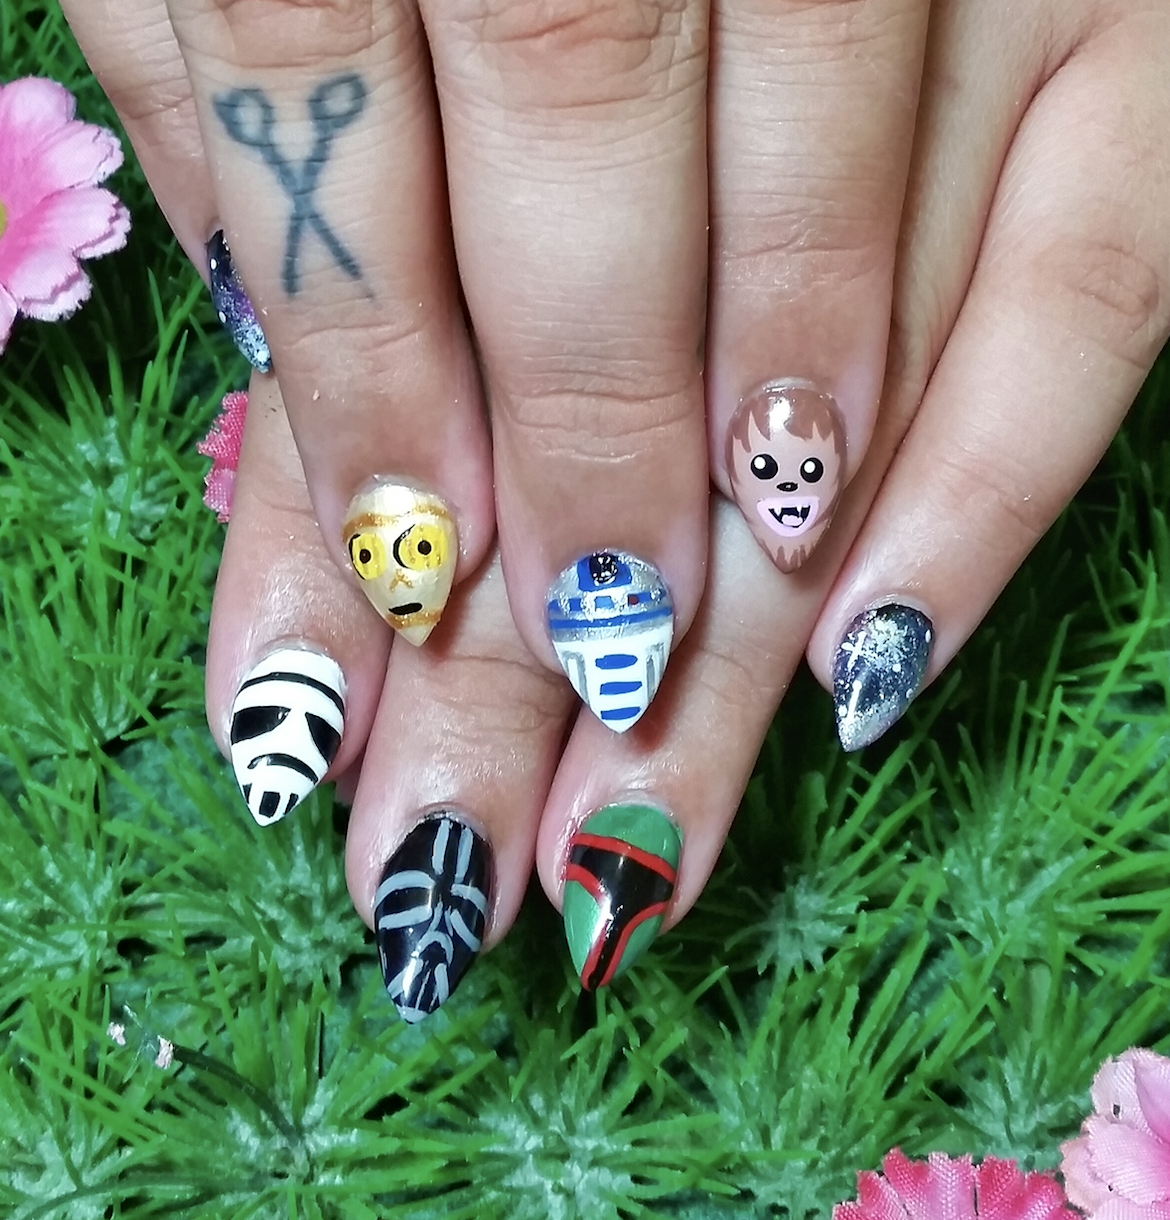 Kawaii Klaws Star Wars Nail Art - Netherworld